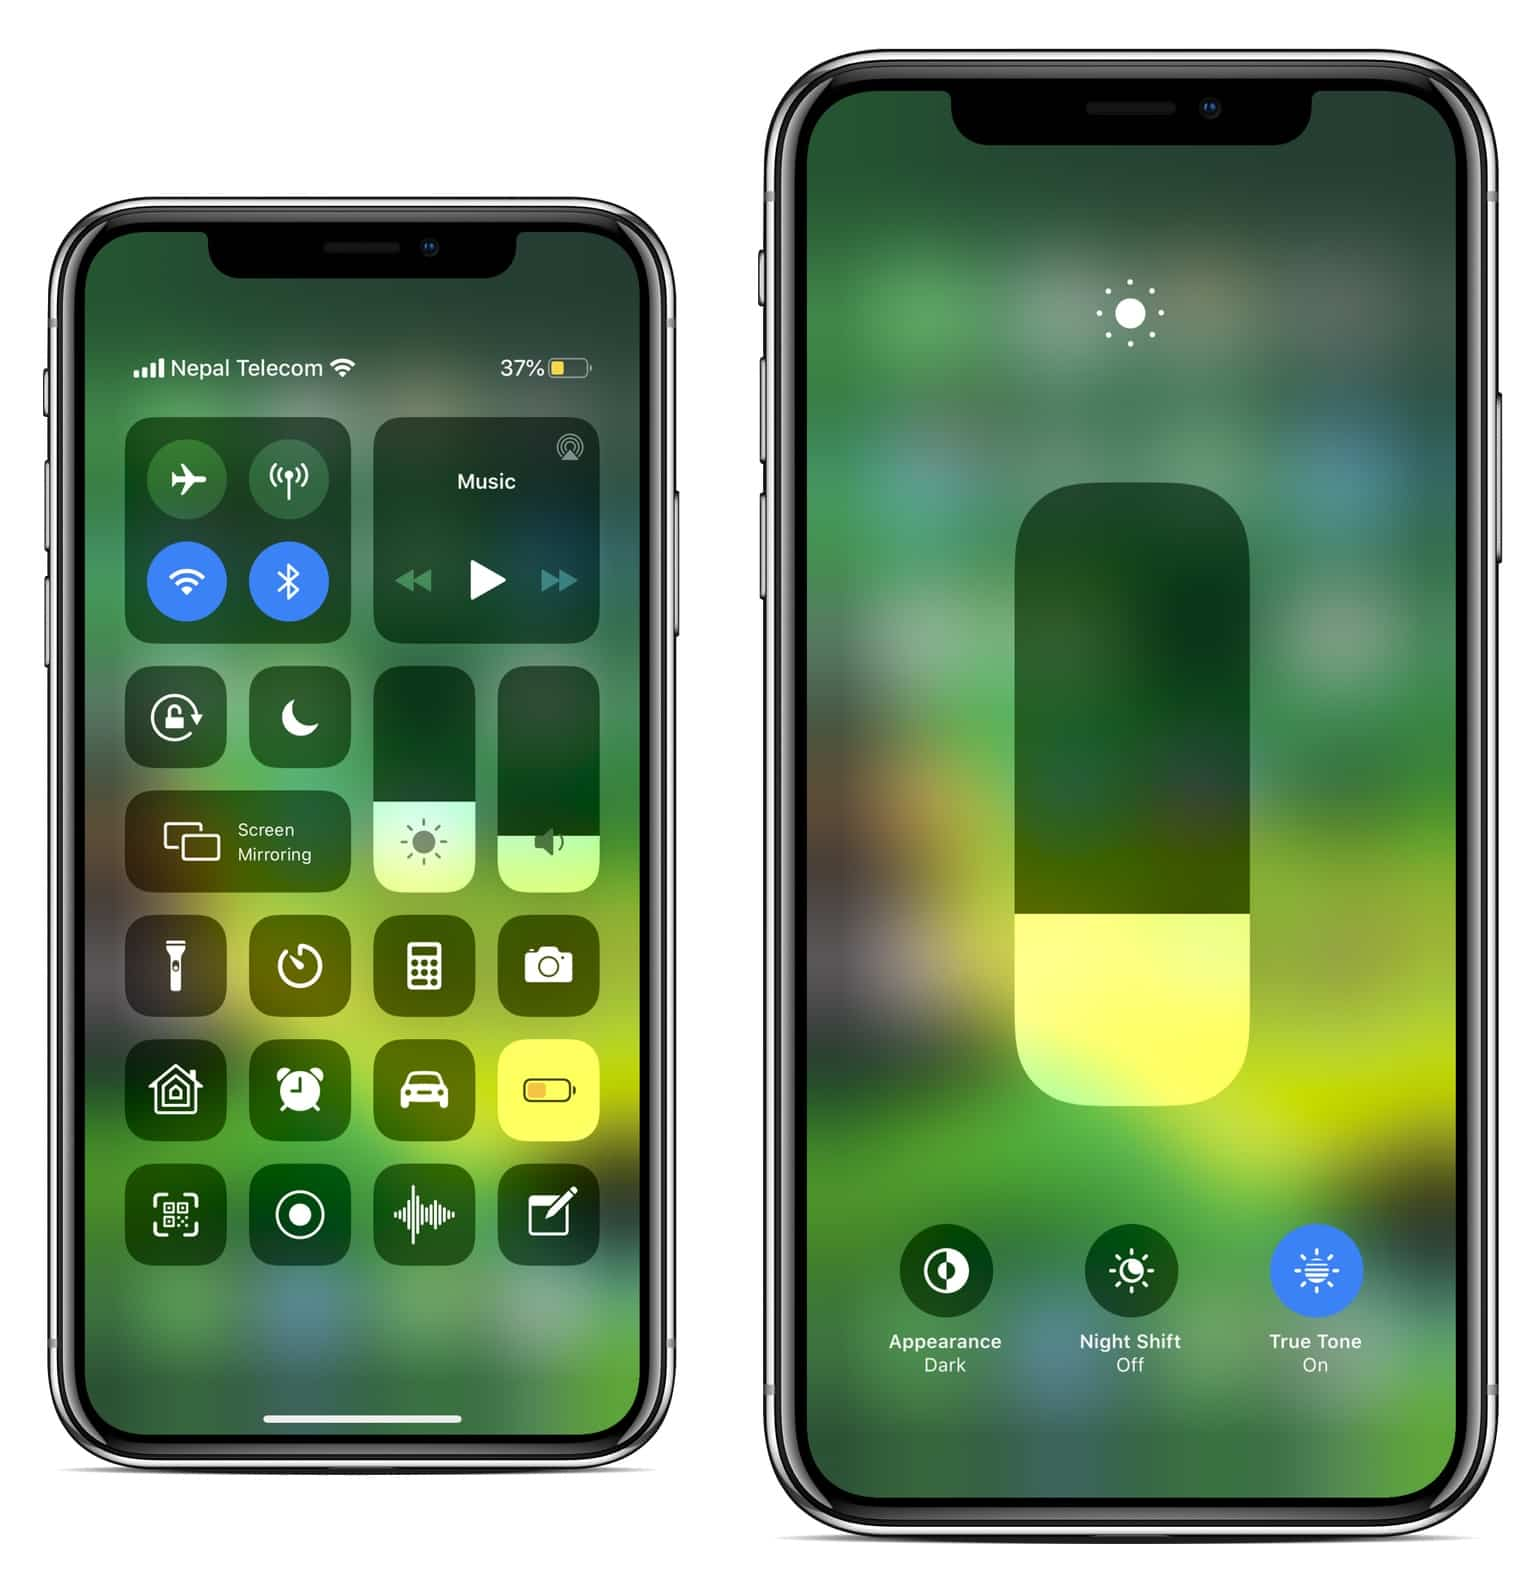 control-center-enable-dark-mode-ios-13-min (1)